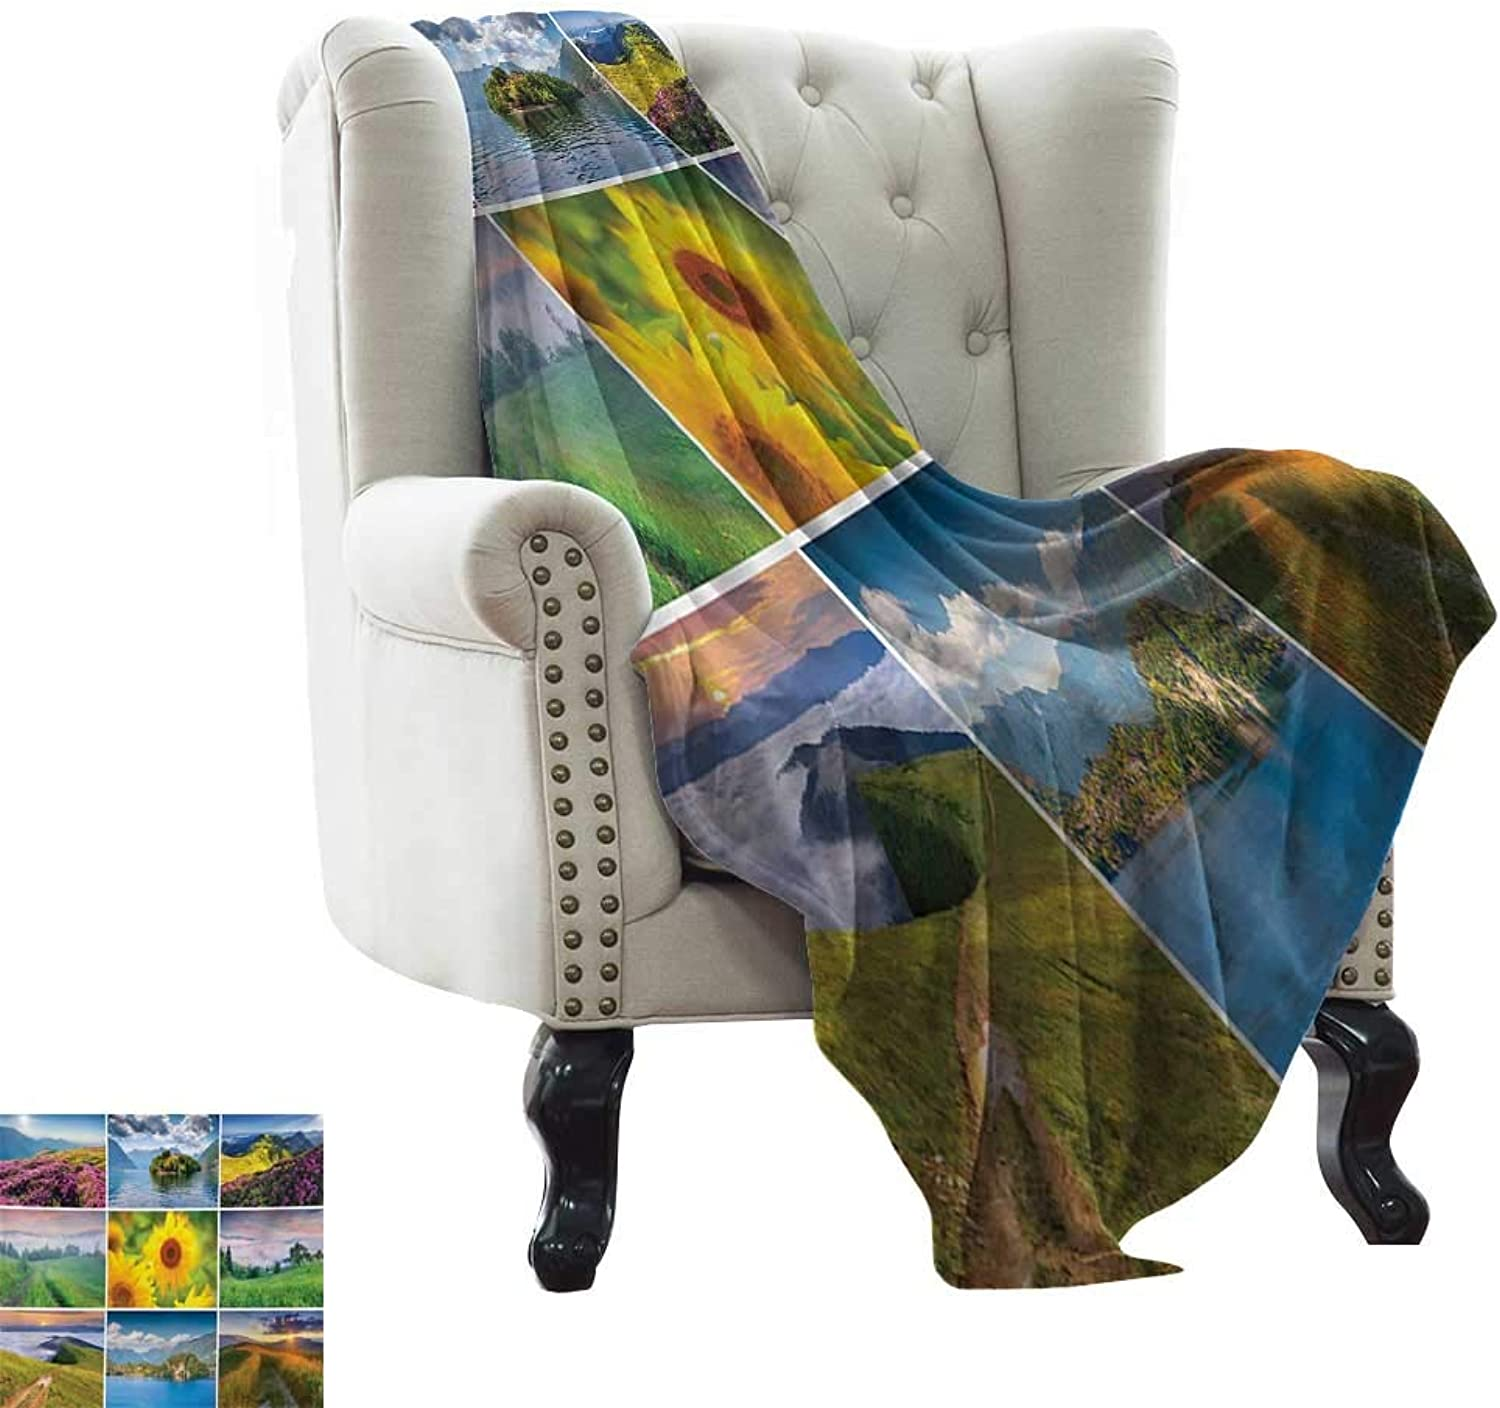 LsWOW Weighted Blanket for Kids Summer,Collage with colorful Summer Landscapes Idyllic Mother Earth Meadows Clouds and Sun,Multicolor Reversible Soft Fabric for Couch Sofa Easy Care 60 x62